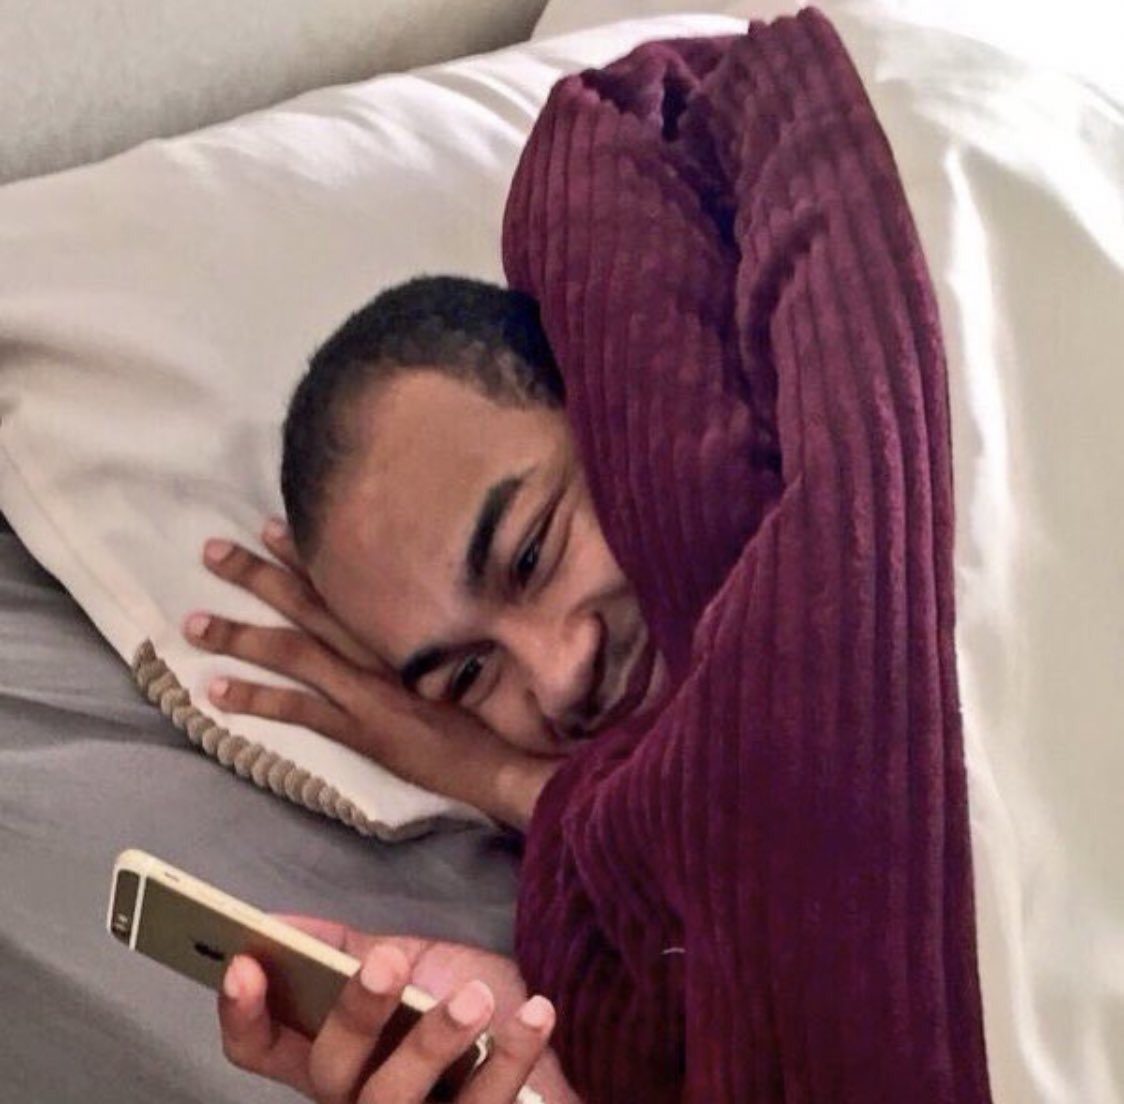 College students on twitter knowing damn well we should be packing